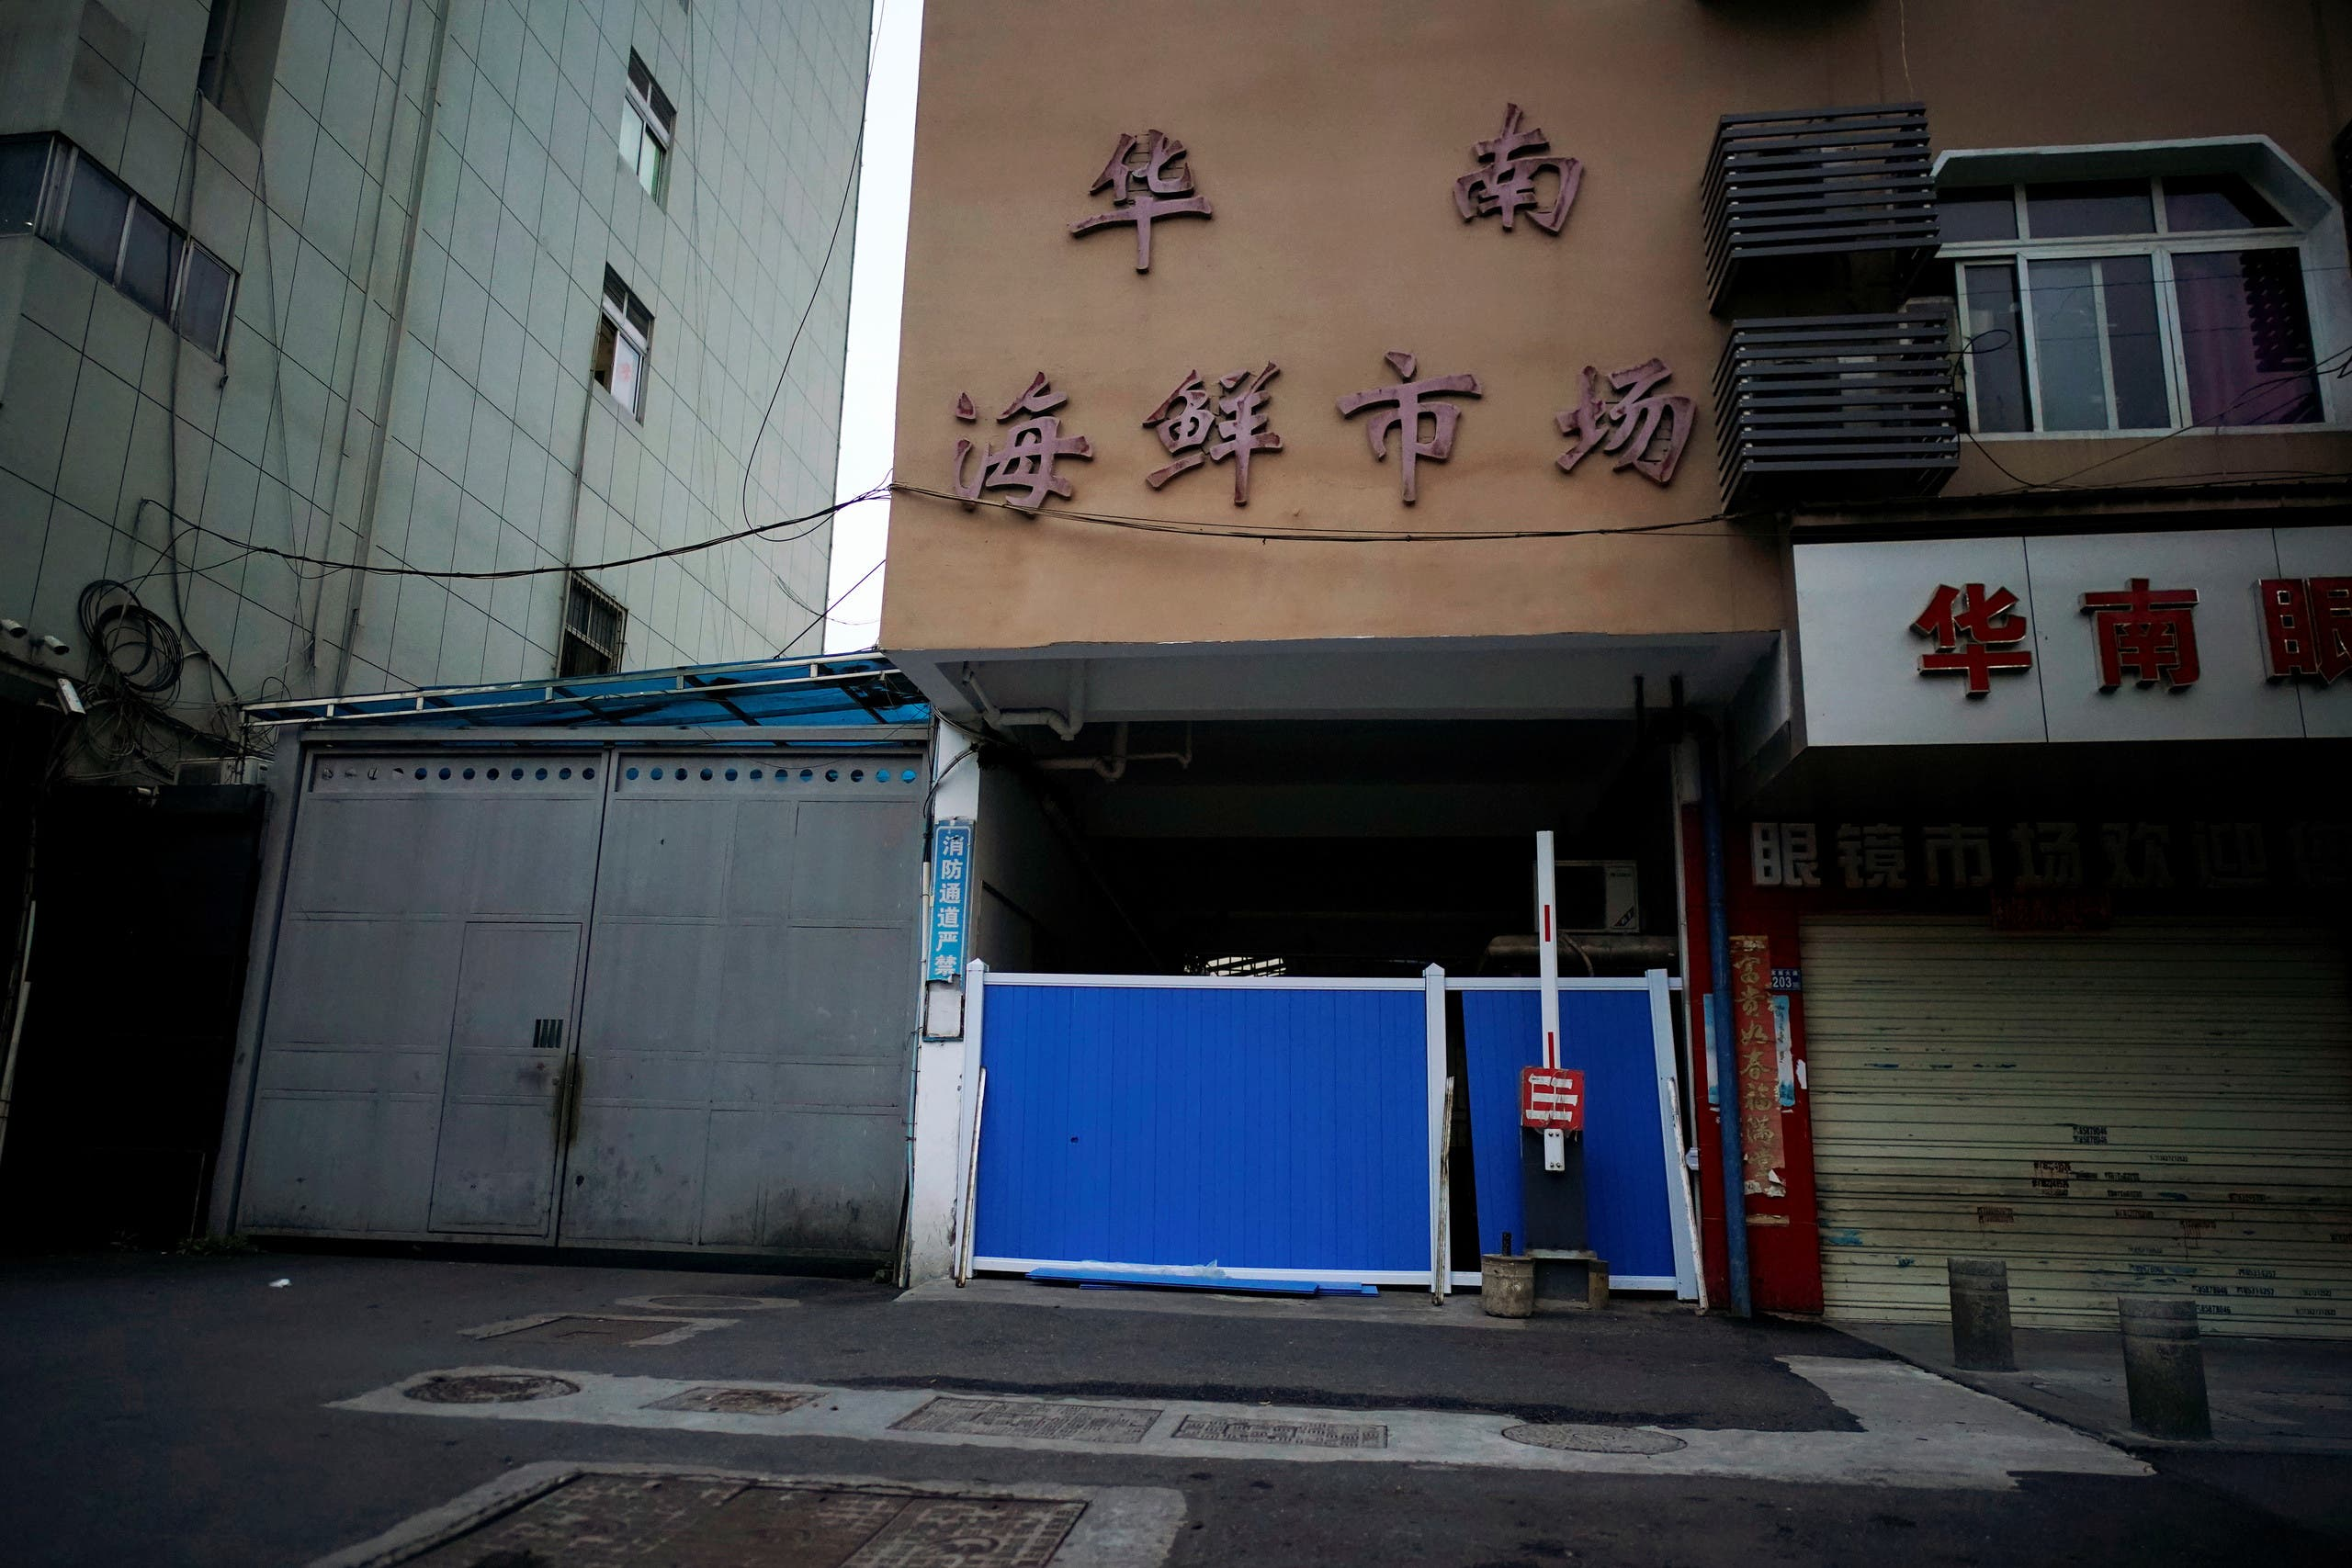 A blocked entrance to Huanan seafood market, where the coronavirus that can cause COVID-19 is believed to have first surfaced, is seen in Wuhan, Hubei province, China March 30, 2020. Picture taken March 30, 2020. (Reuters)